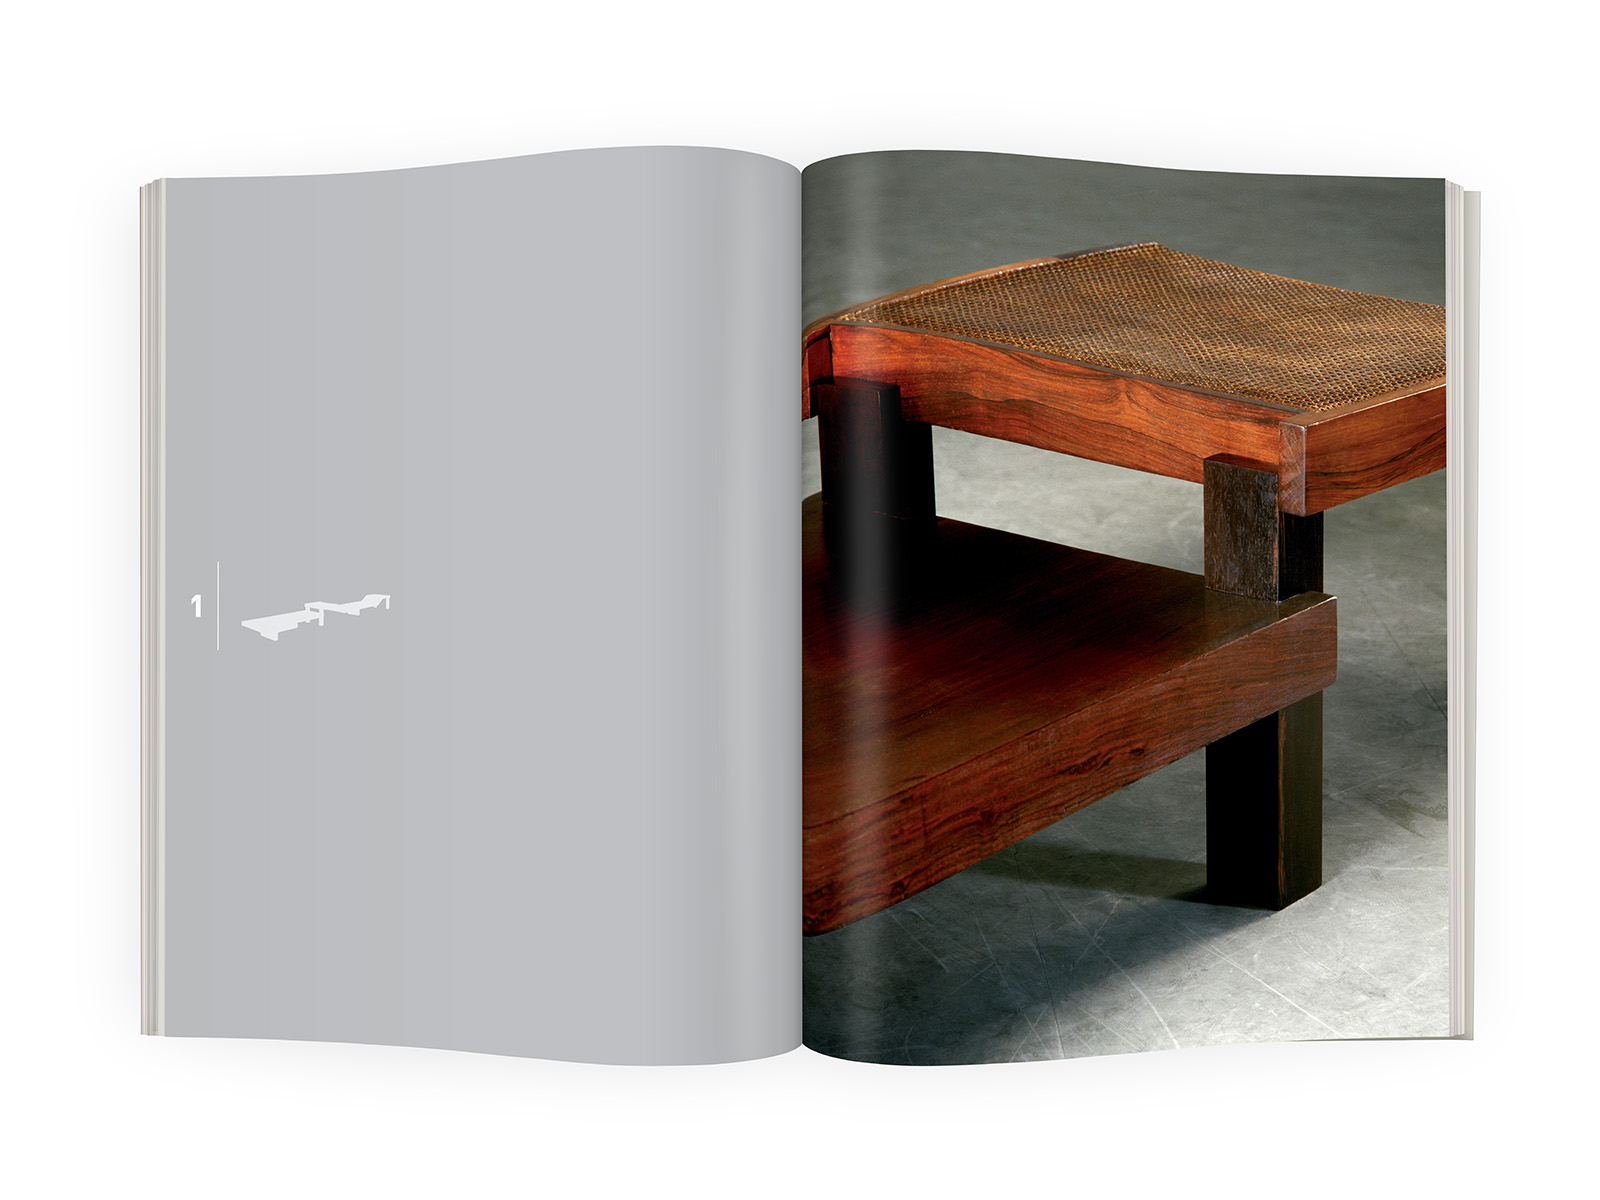 galerieDOWNTOWN - Catalogue Charlotte Perriand Bresil p30-31